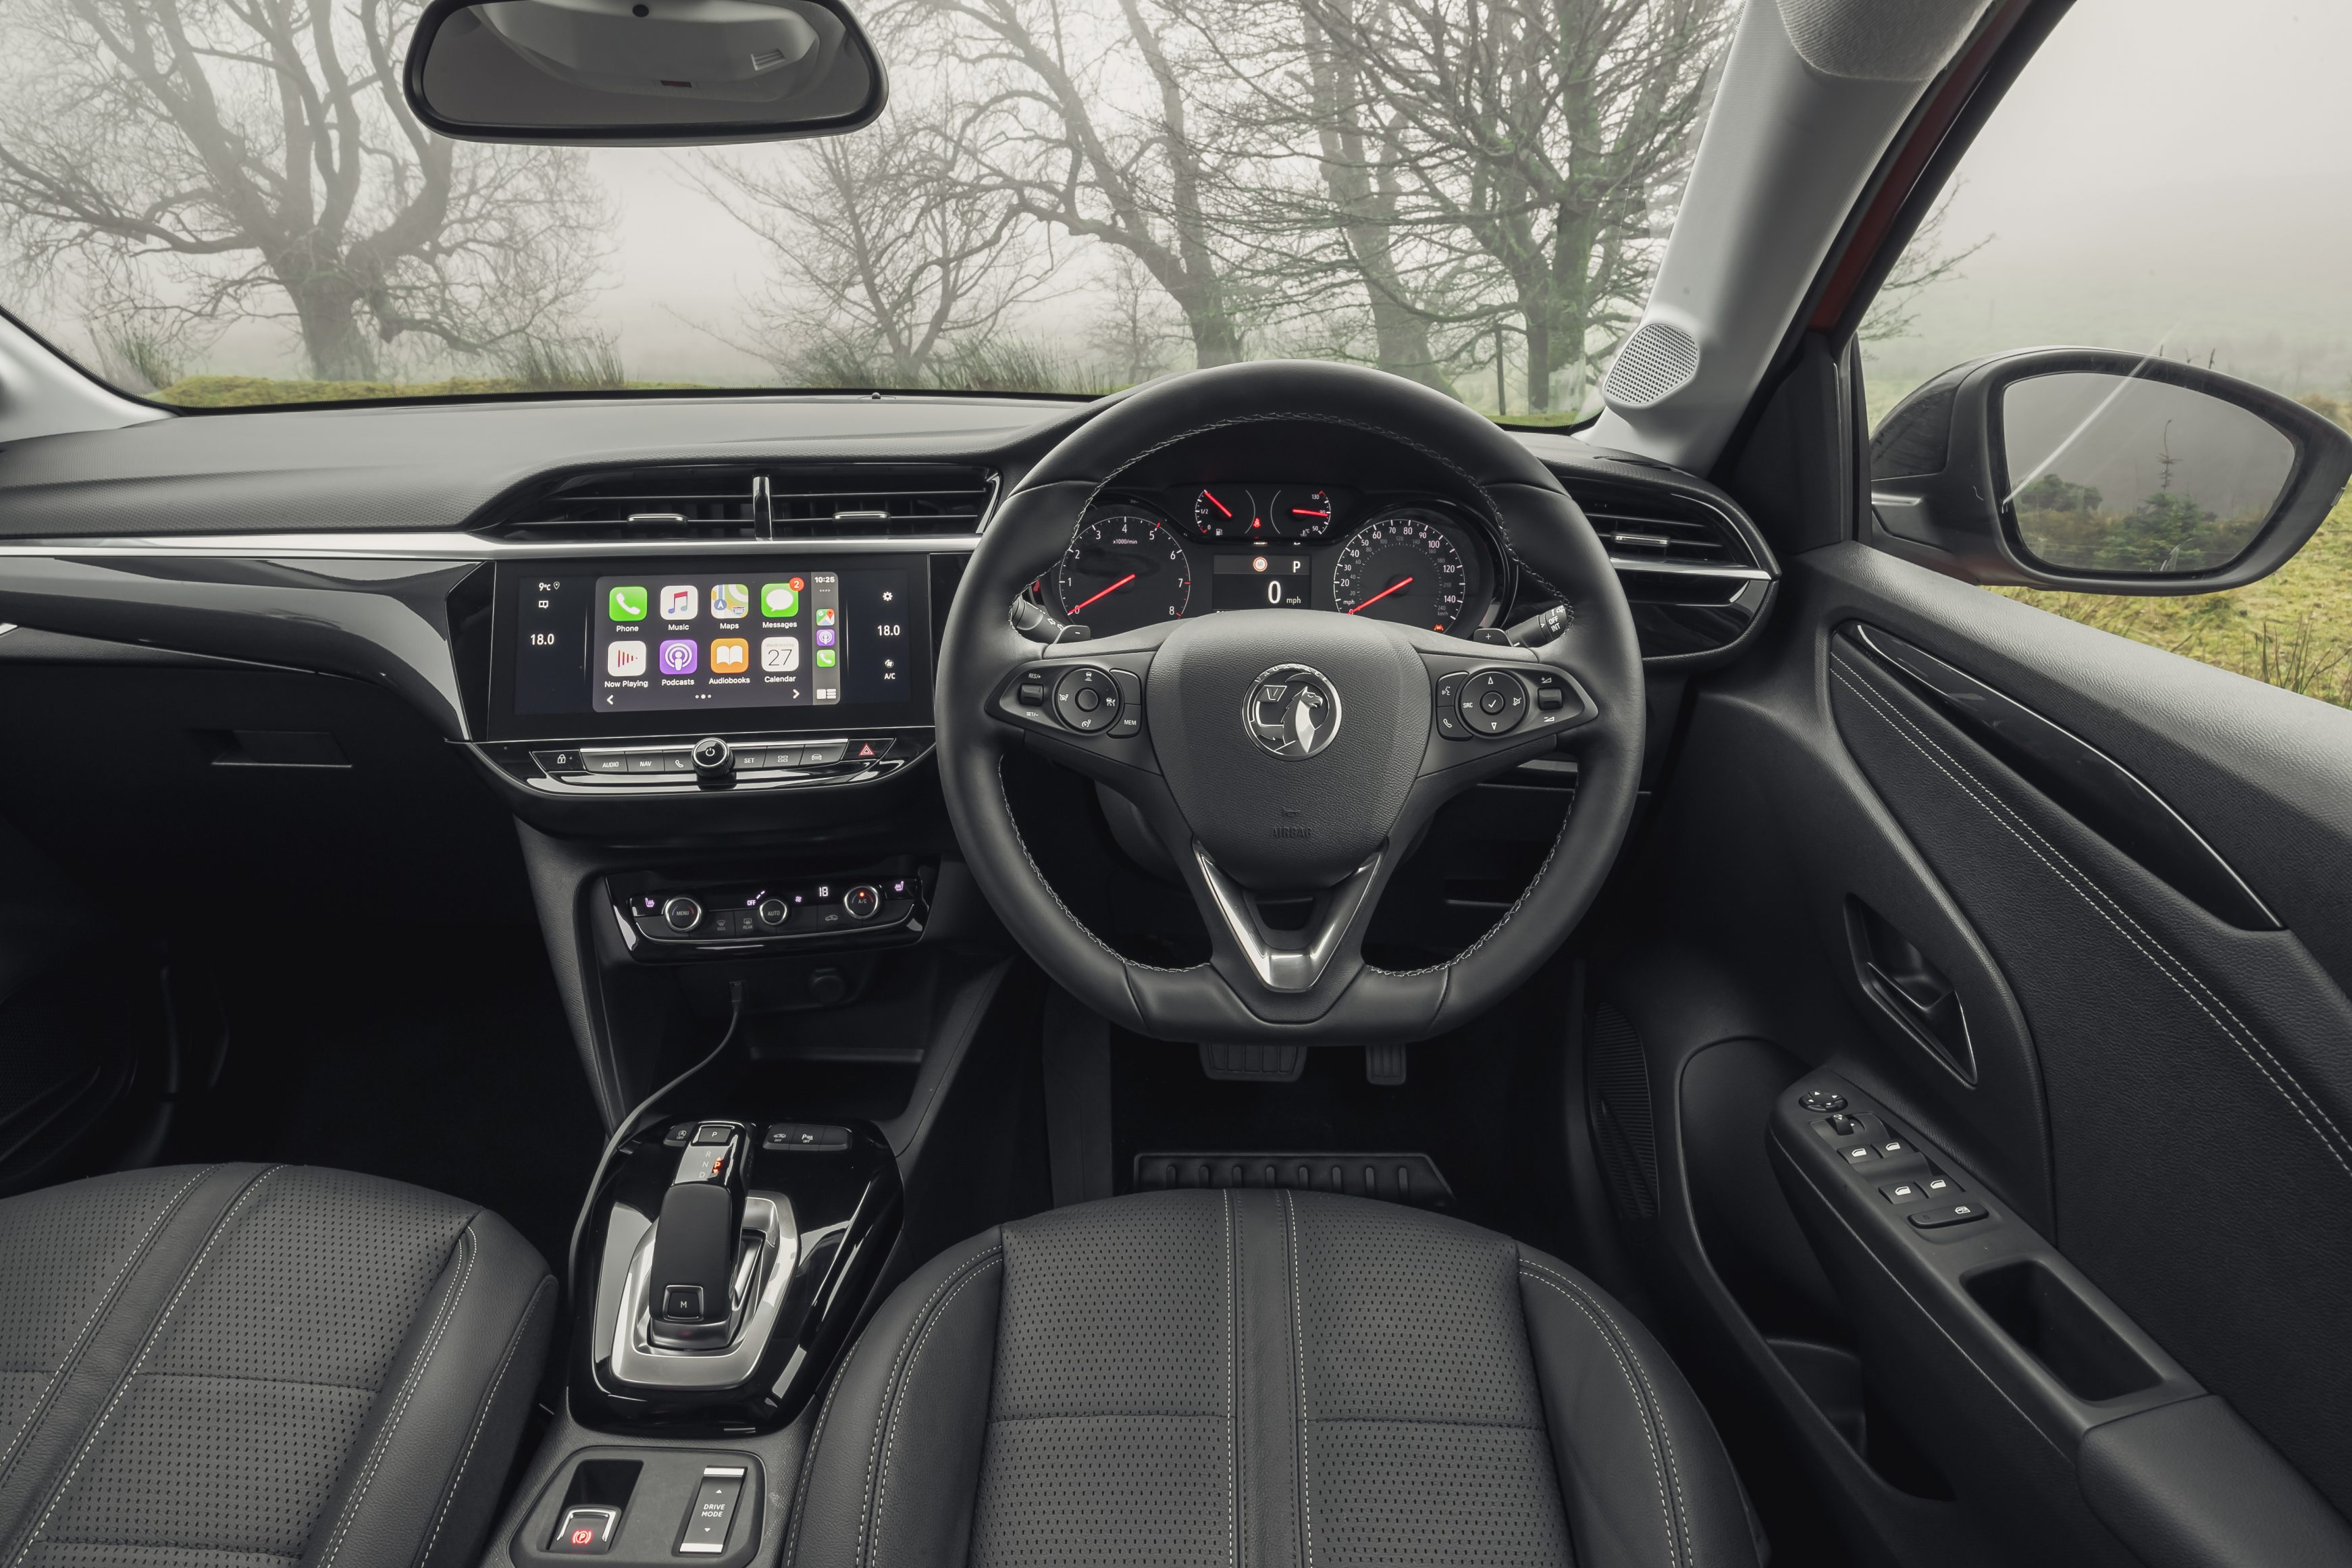 The 2021 Vauxhall Corsa interior is well put together and spacious, while higher trim levels come with leather upholstery